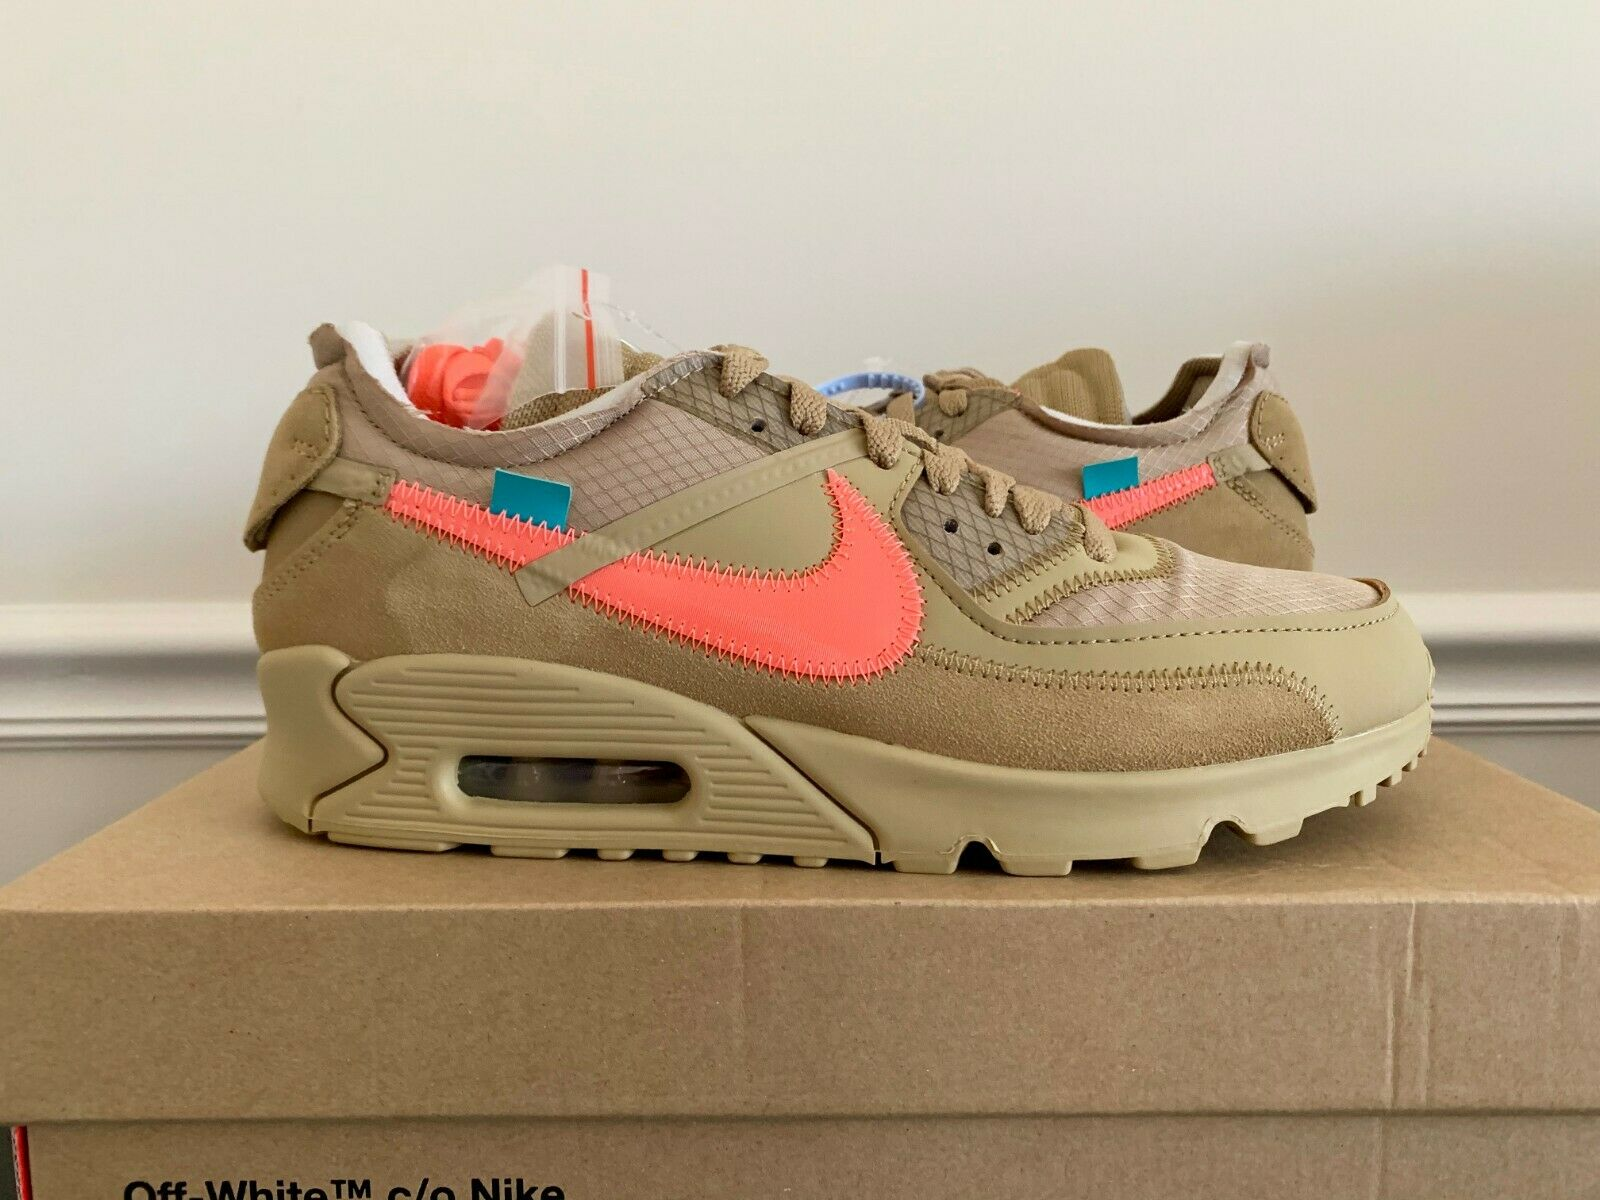 DS BRAND NEW NIKE X OFF-WHITE THE TEN AIR MAX 90 DESERT ORE SZ 8.5 AA7293-200